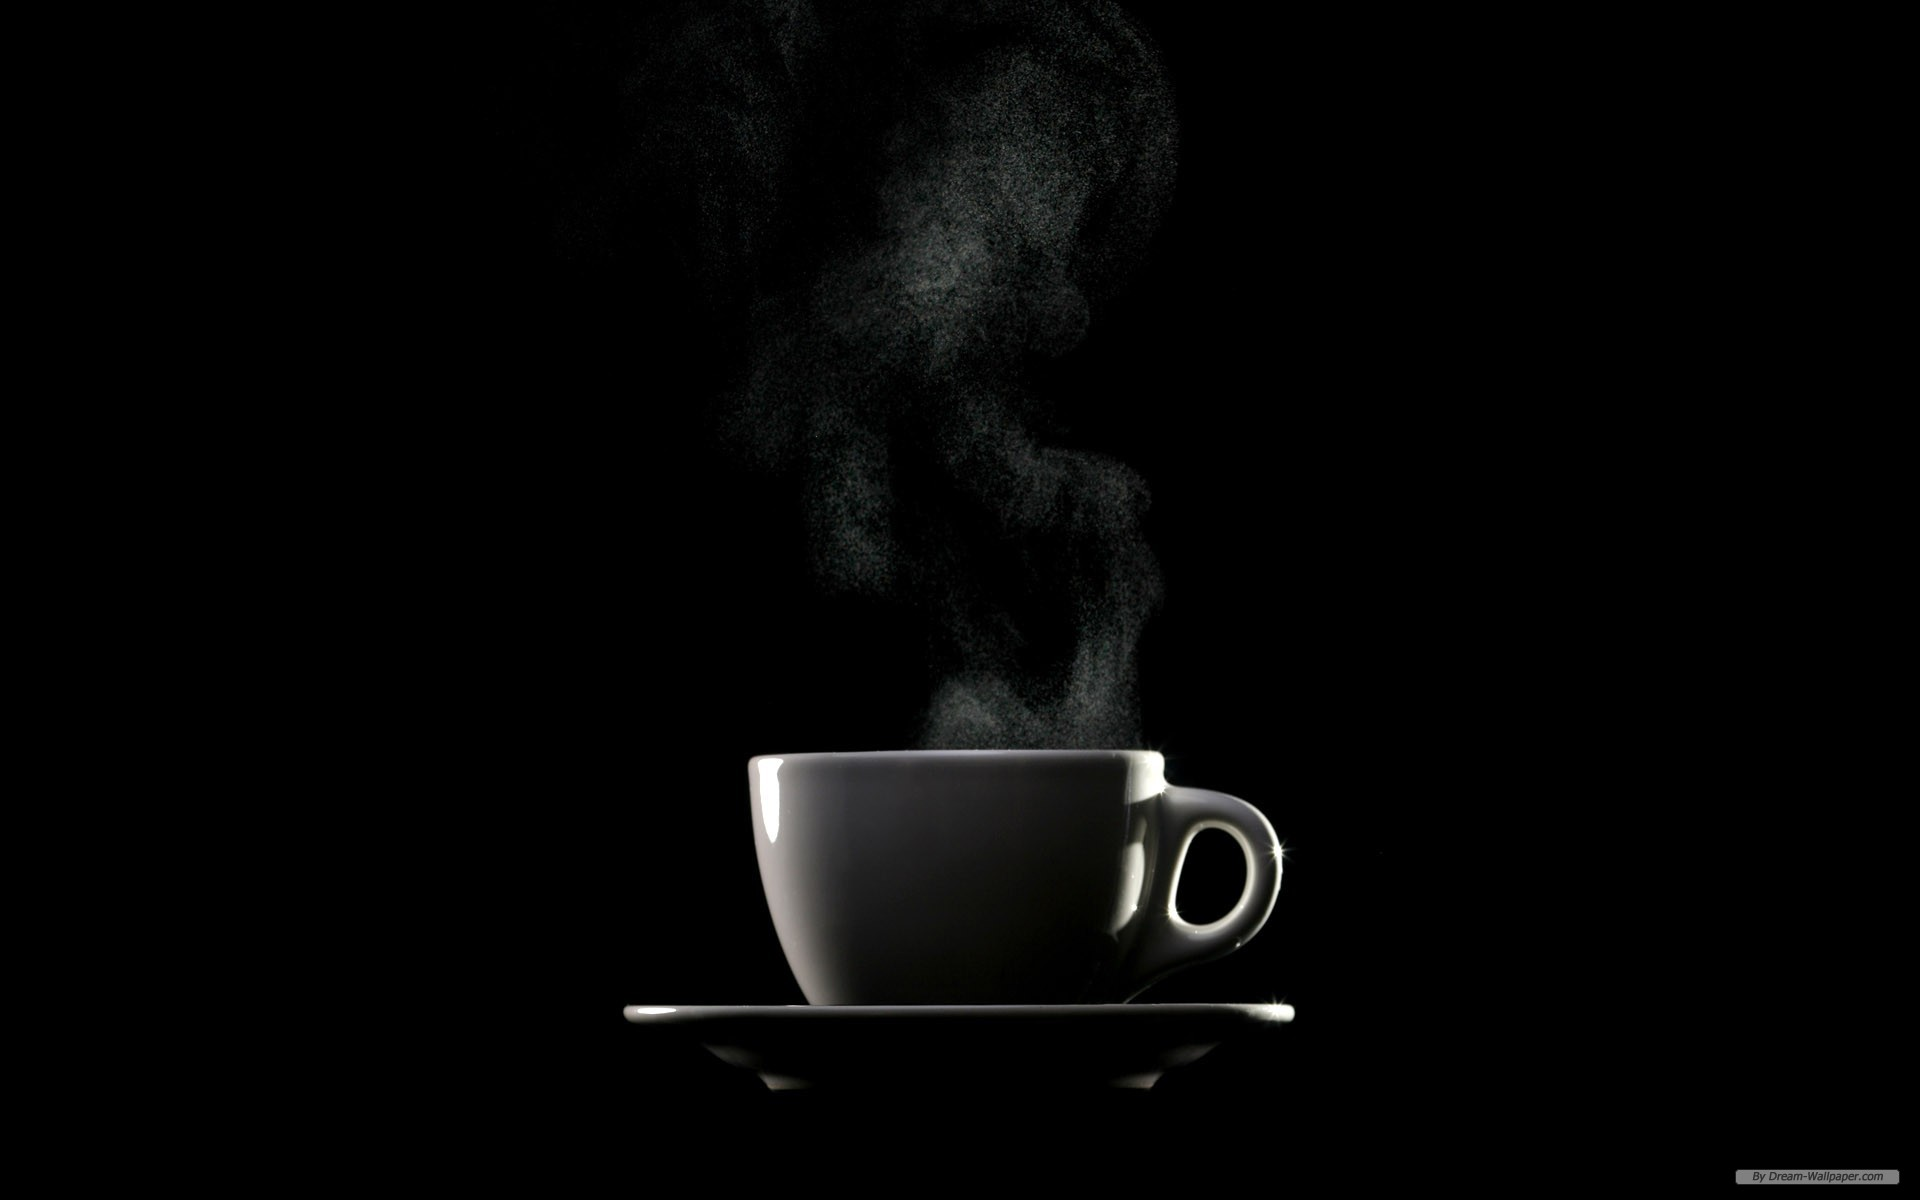 Steaming Coffee Cup | A Pondering Mind